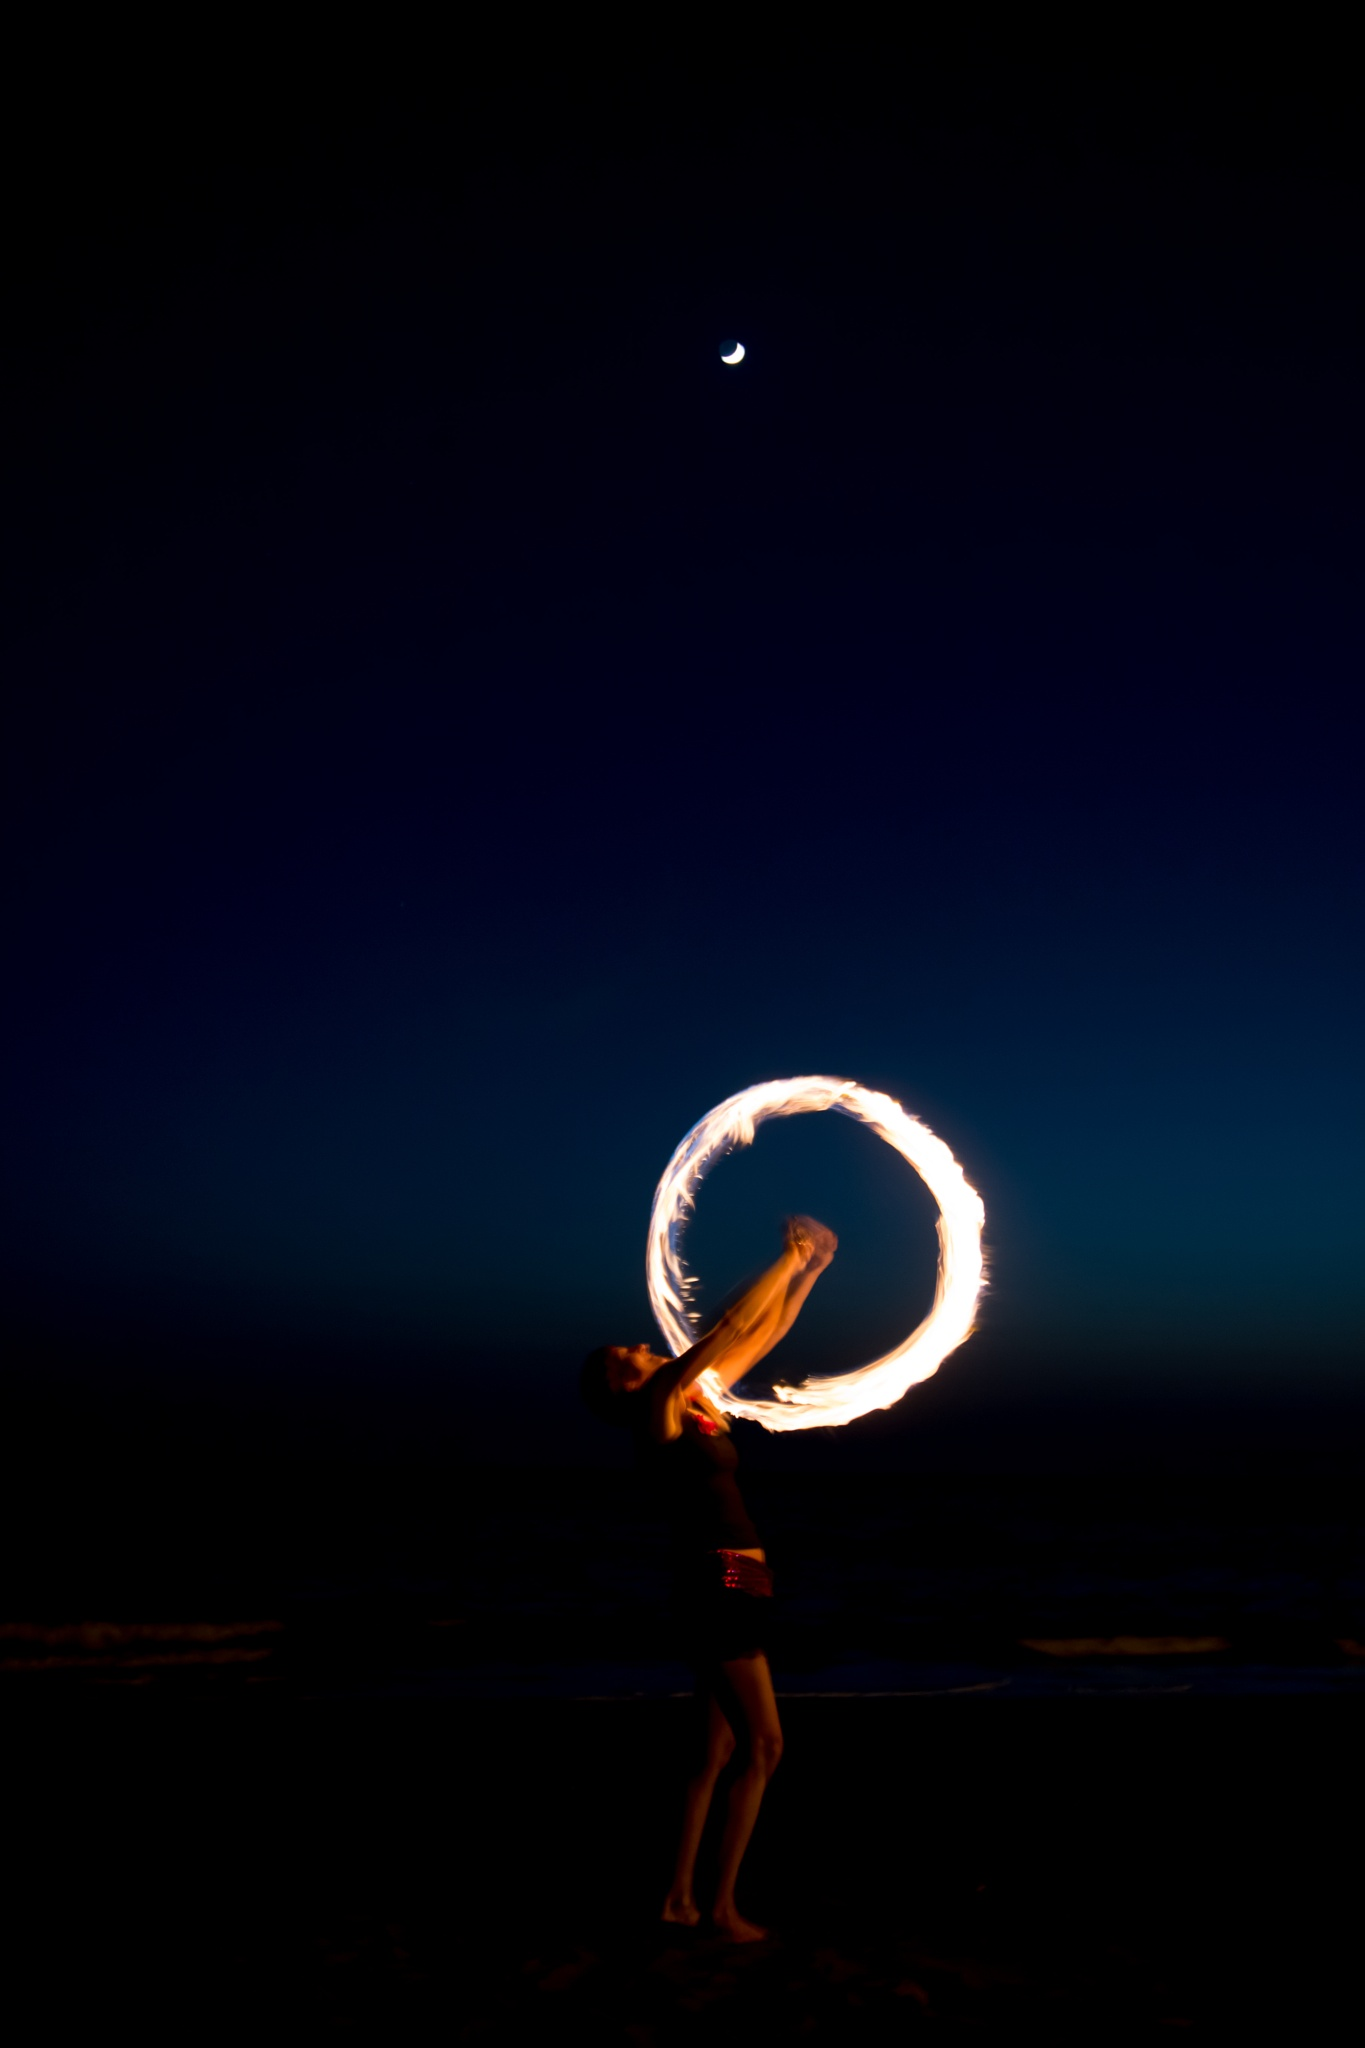 Daily Fire and Jumbe show on the beach of Valle Gran Rey - La Gomera by Chamkhi Jamil